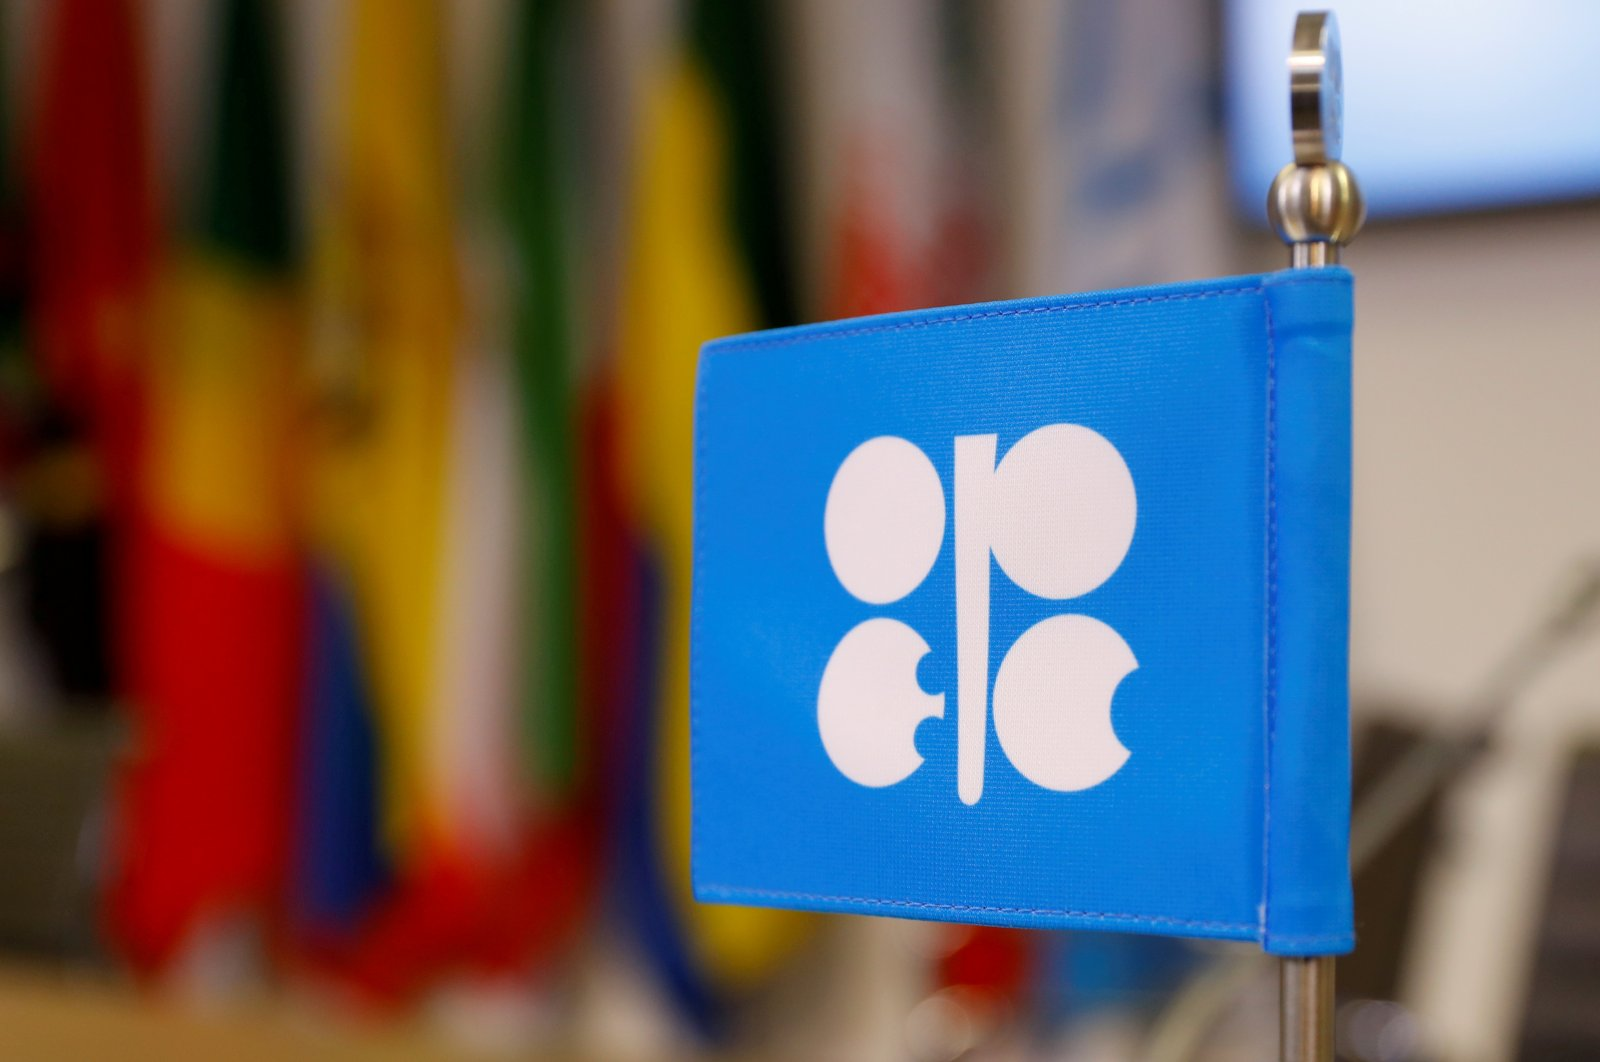 The logo of the Organization of the Petroleum Exporting Countries (OPEC) on a flag at the oil producer group's headquarters in Vienna, Austria, Dec. 7, 2018. (Reuters Photo)